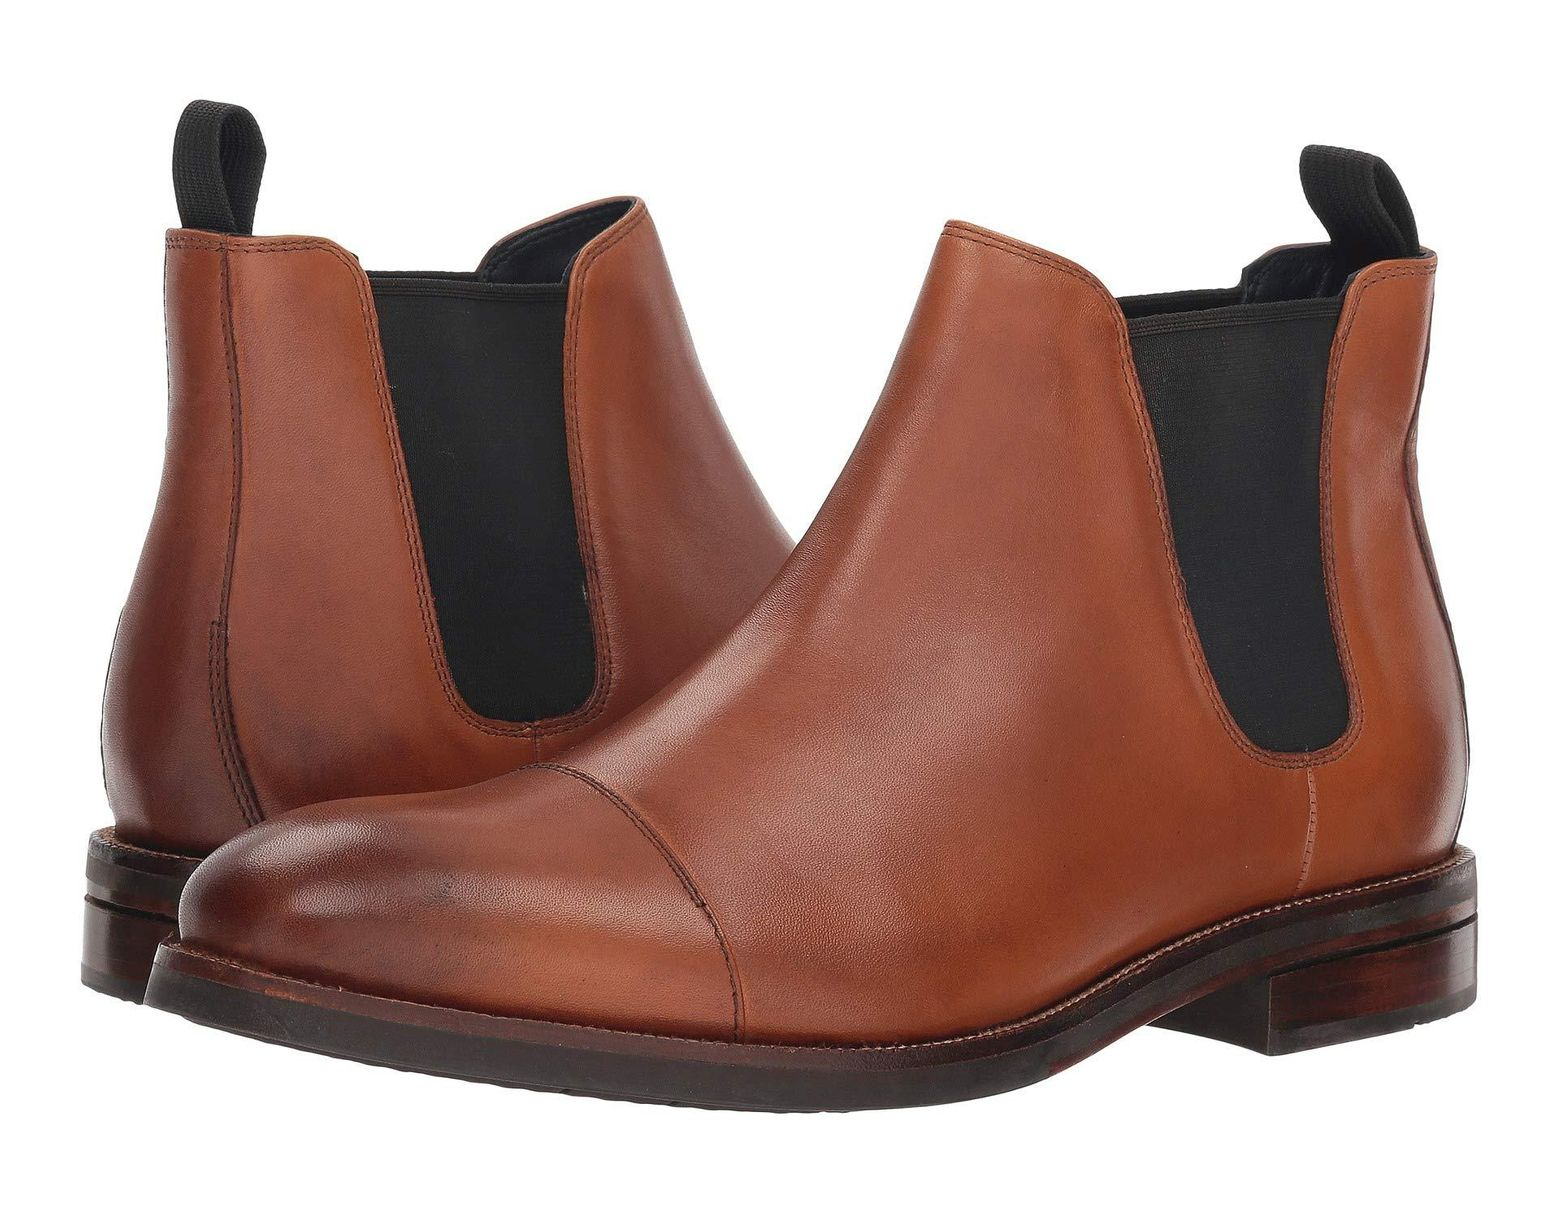 092f3604958a9 Cole Haan Wagner Grand Chelsea Boot in Brown for Men - Lyst